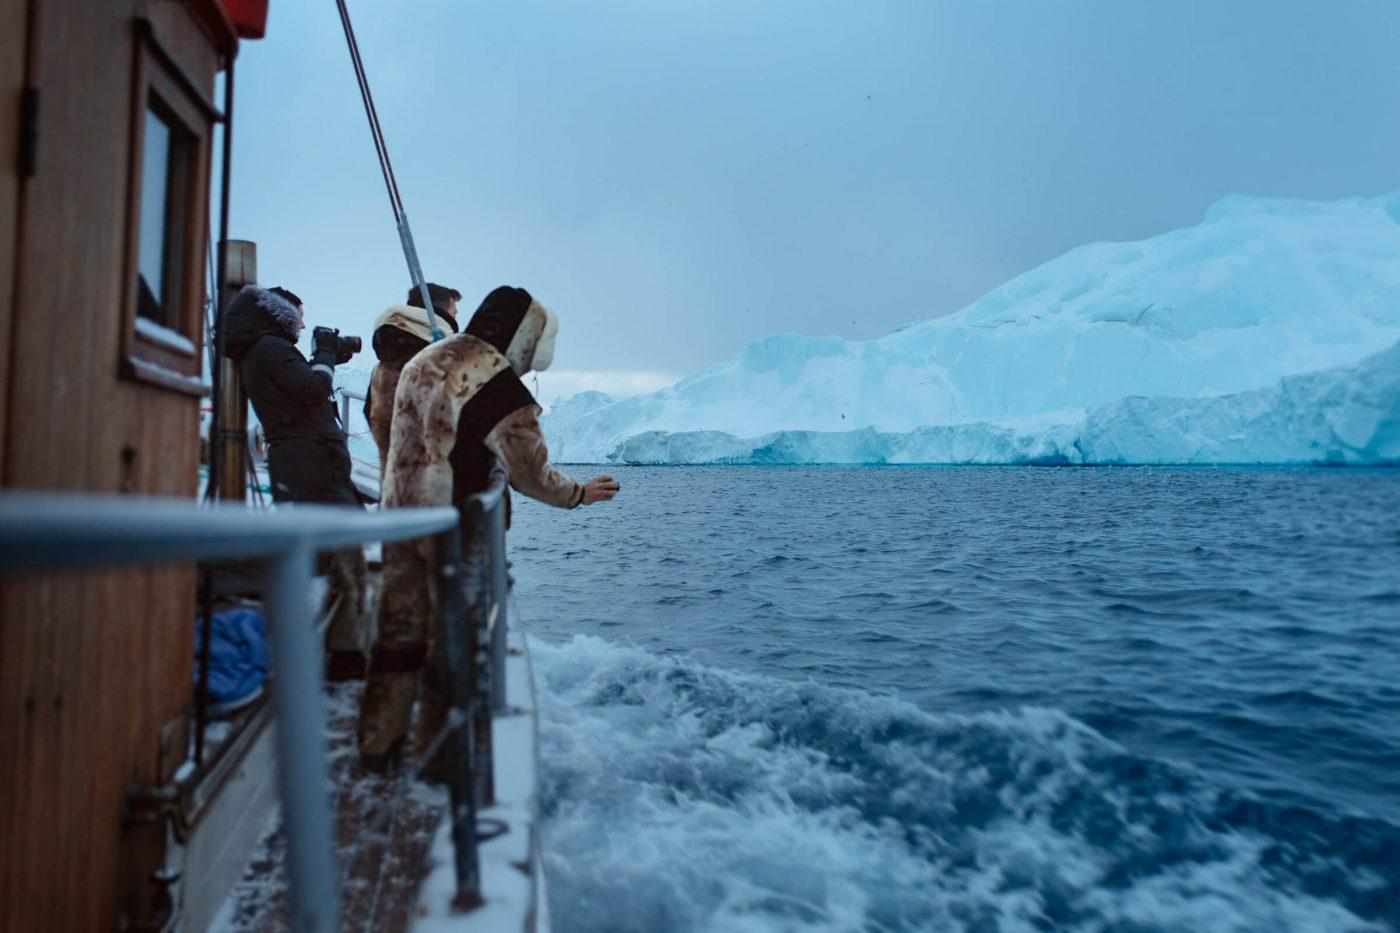 Tourists taking photos on an iceberg boat tour in Ilulissat in Greenland. By Rebecca Gustafsson